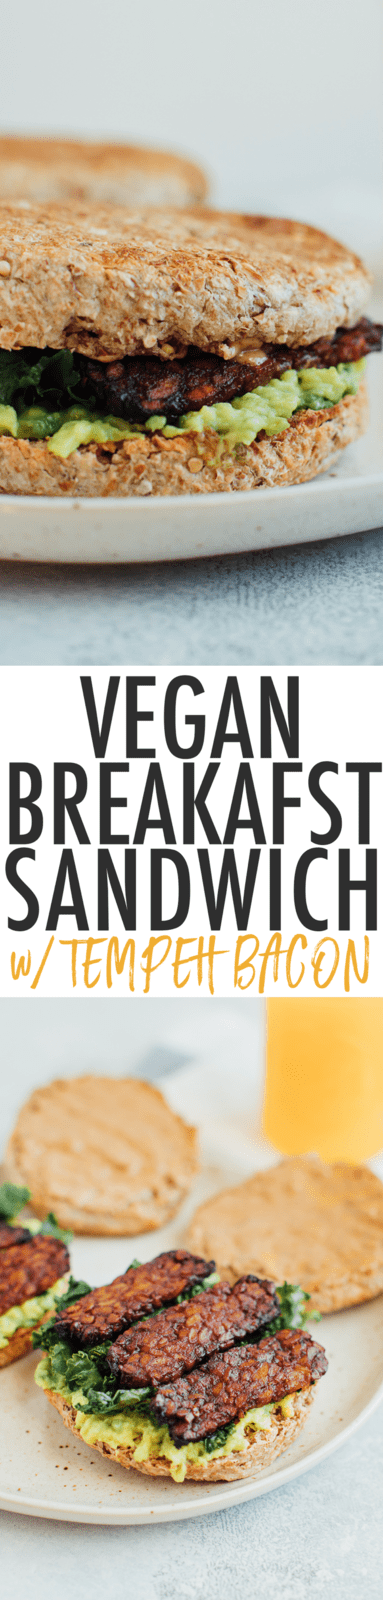 A vegan breakfast sandwich loaded with all the goods: creamy avocado, almond butter, sautéed kale and tempeh bacon, served on a perfectly toasted english muffin.